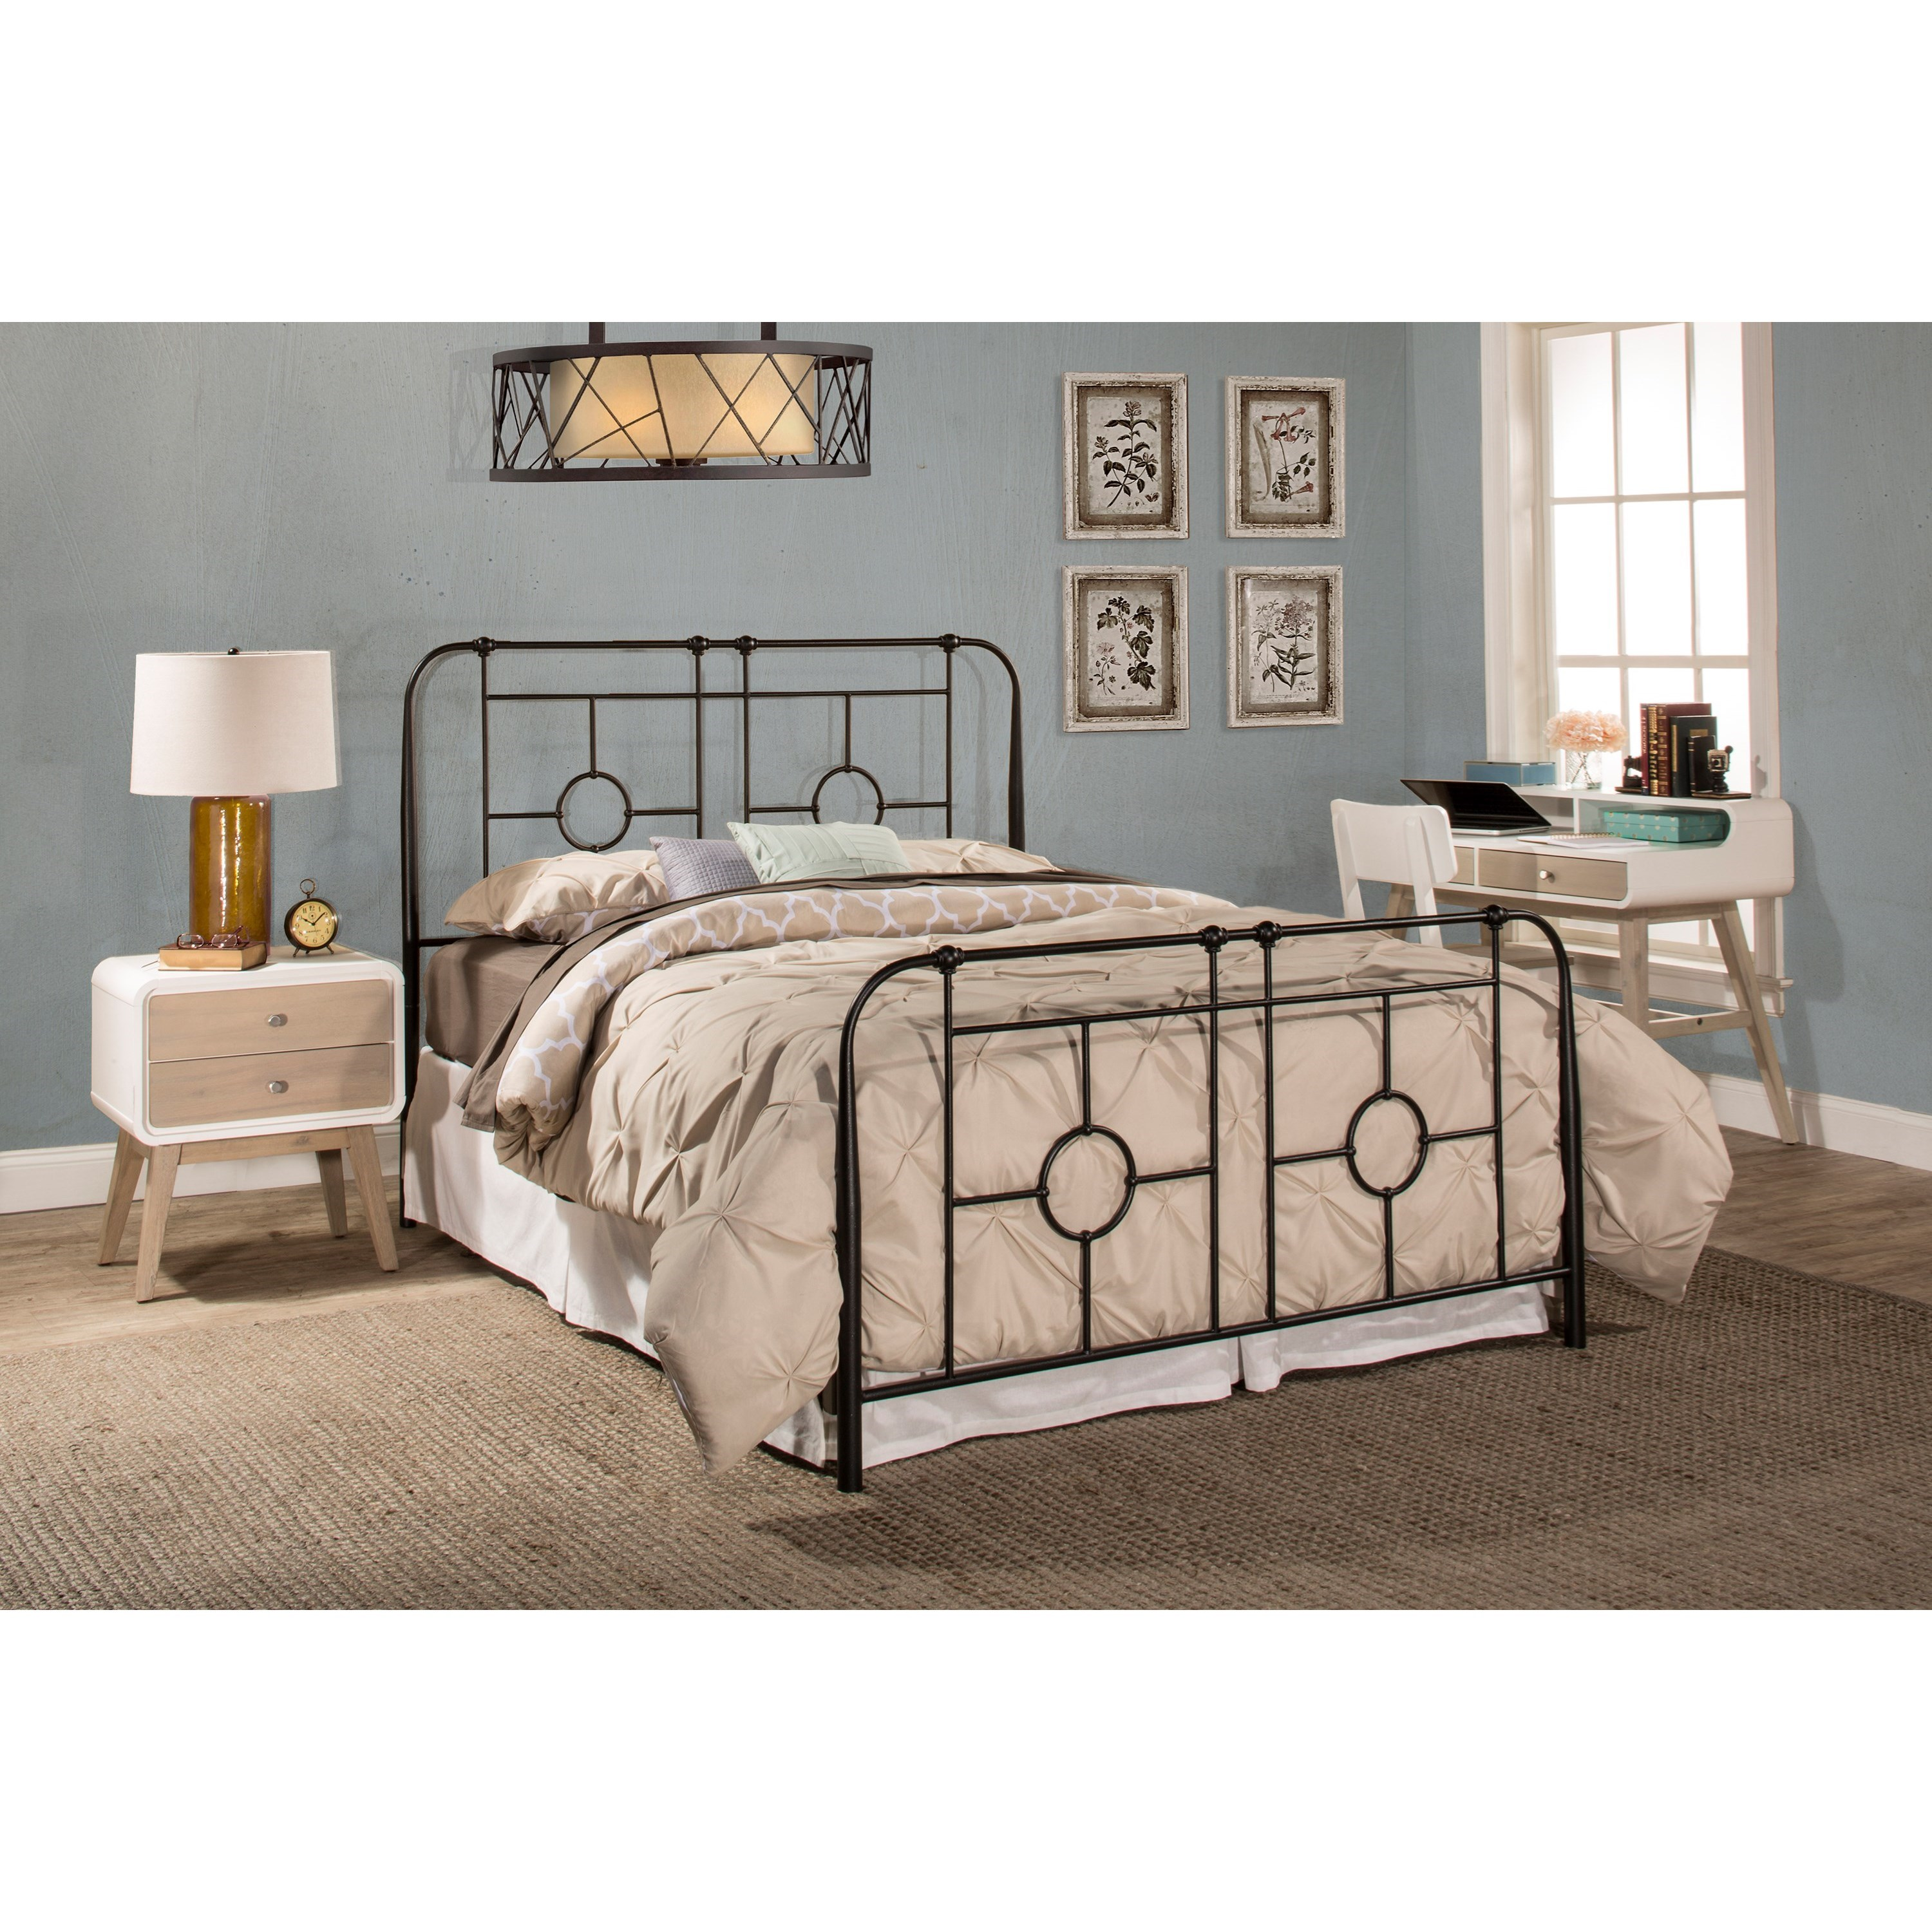 Hillsdale Metal Beds Queen Bed Set Frame Not Included